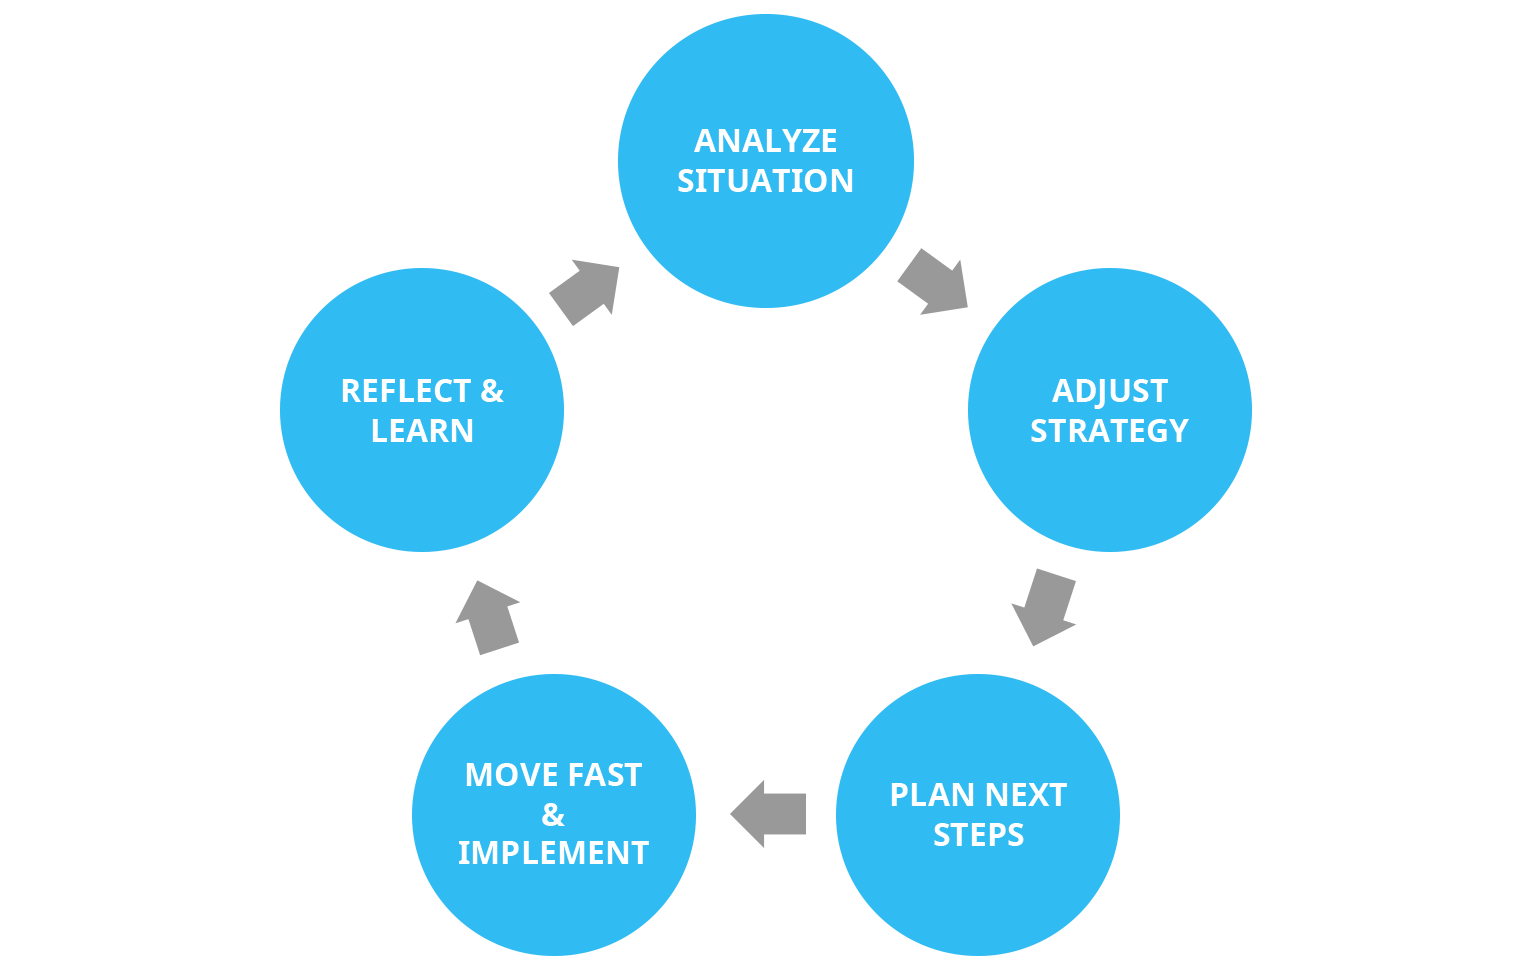 innovation-is-an-iterative-process